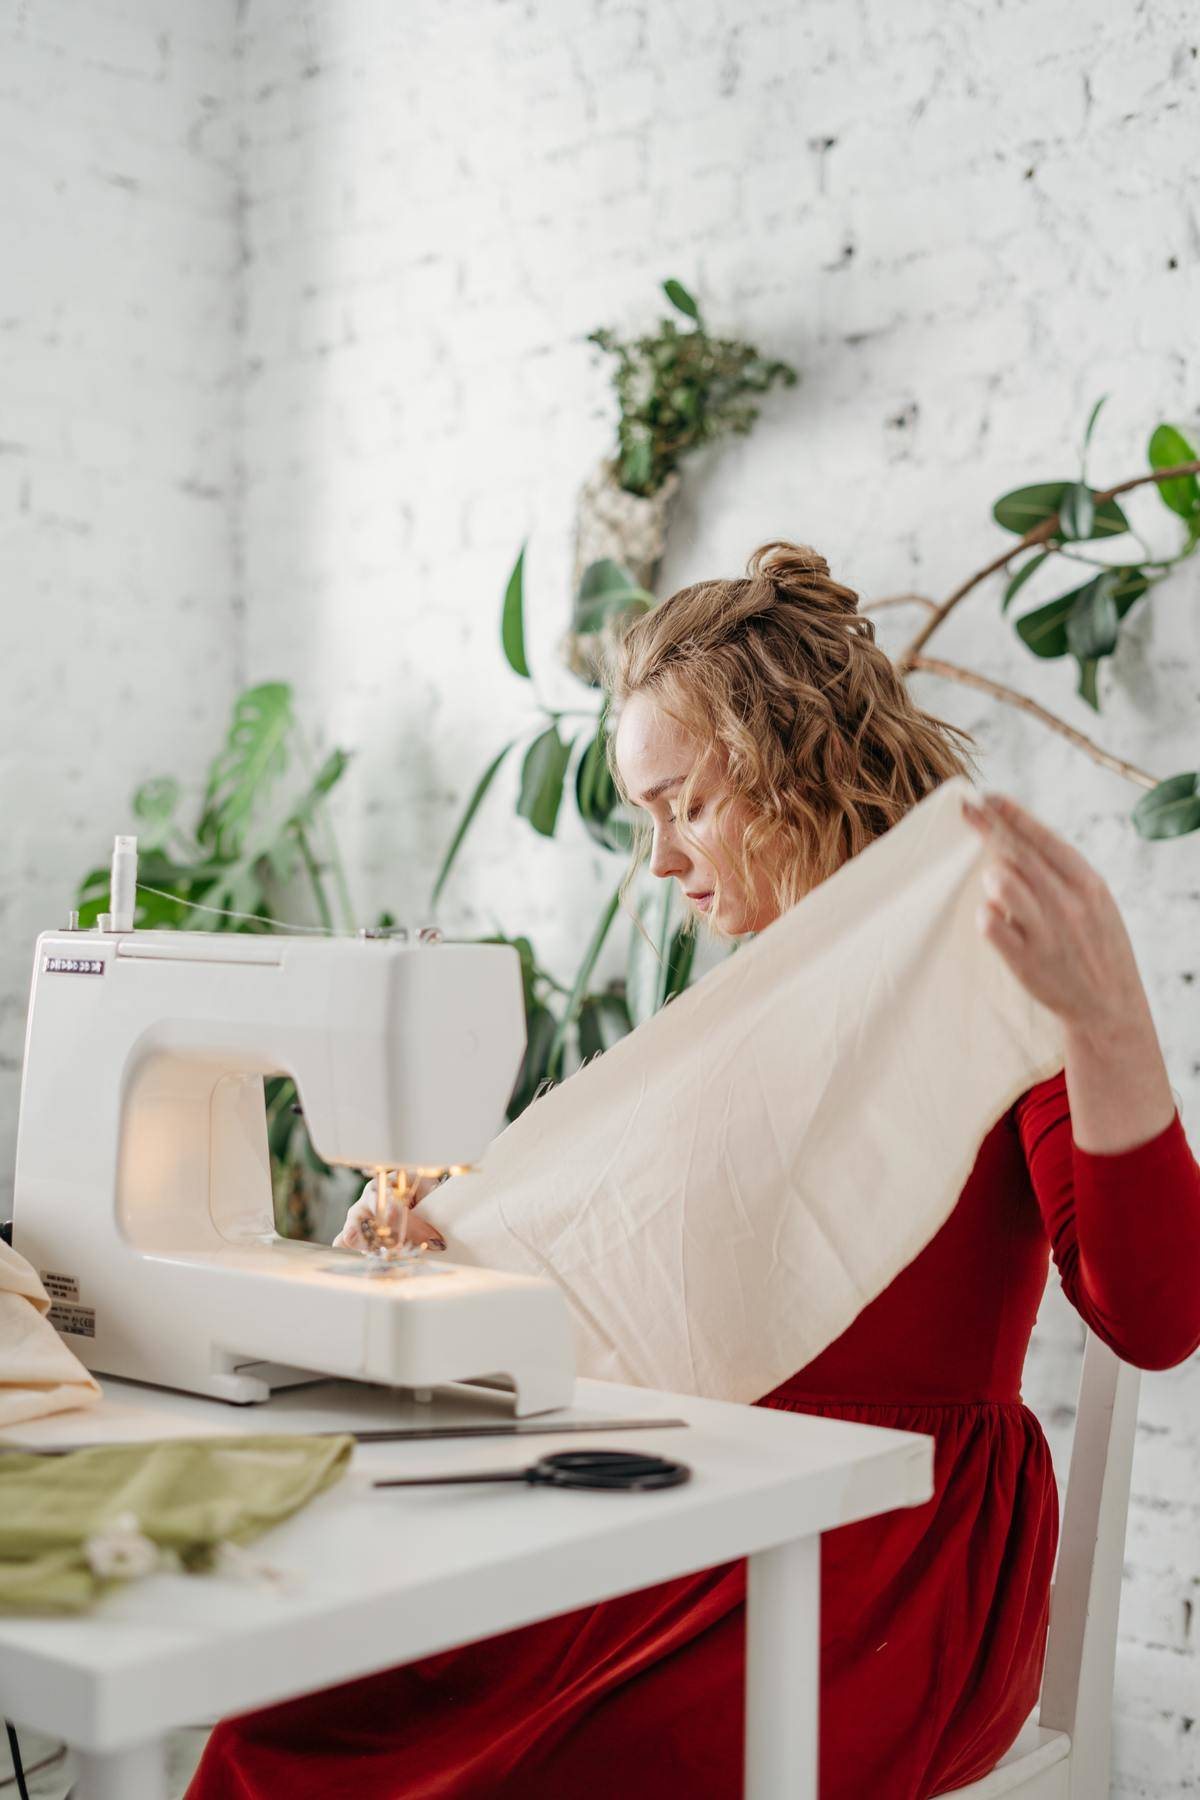 a woman sitting with a sewing machine making something out of white fabric